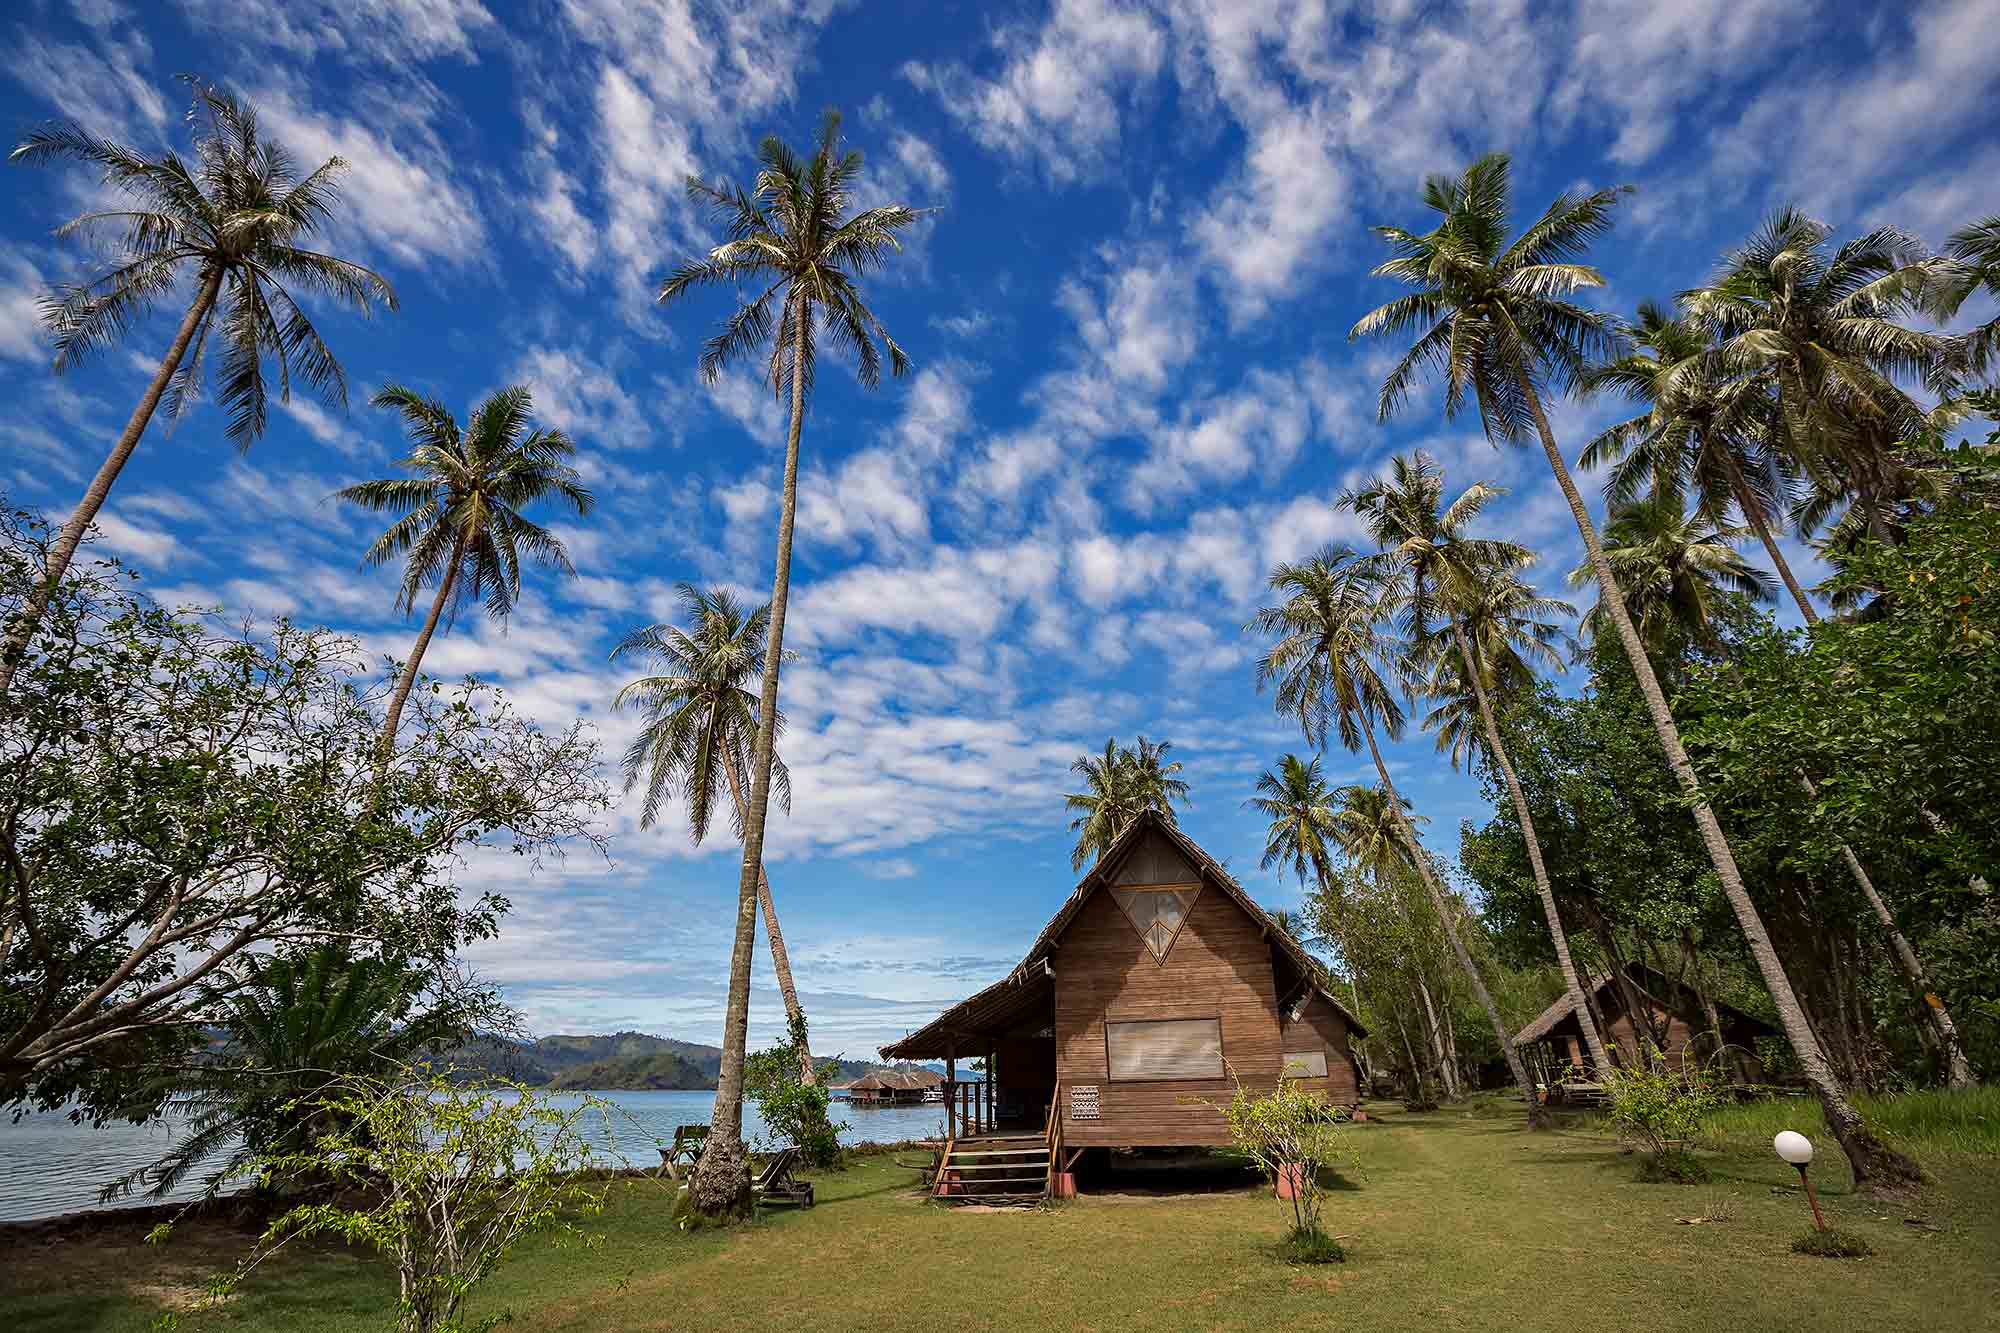 Cubadak Paradiso Village Resort in West Sumatra, Indonesia. © Ulli Maier & Nisa Maier